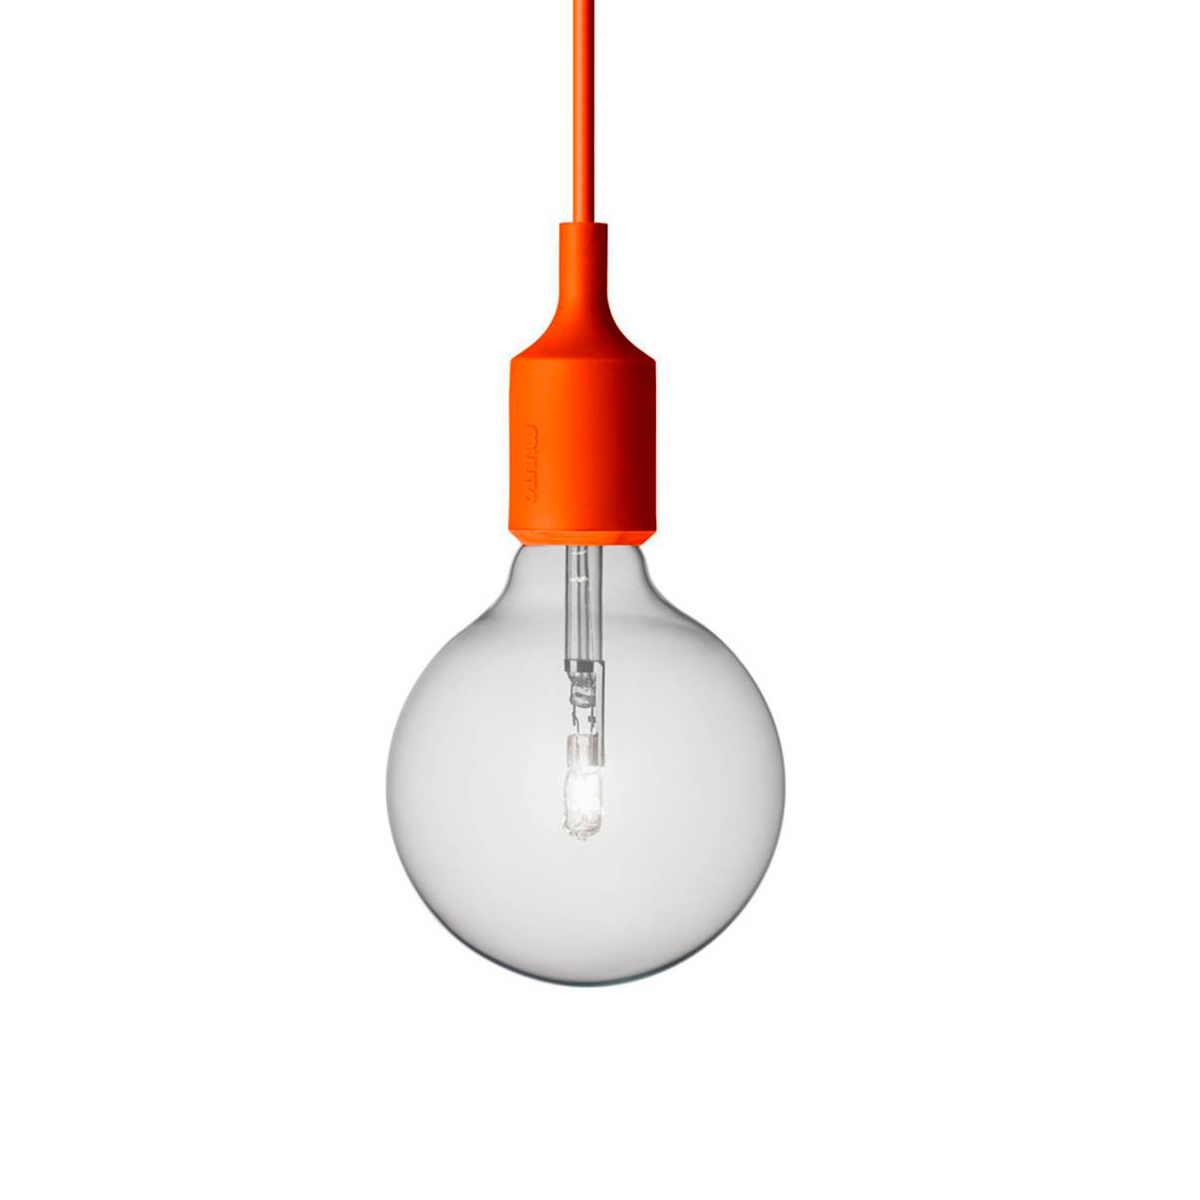 Designerlampen Outlet E27 I Muuto I Evolution Design Lampen